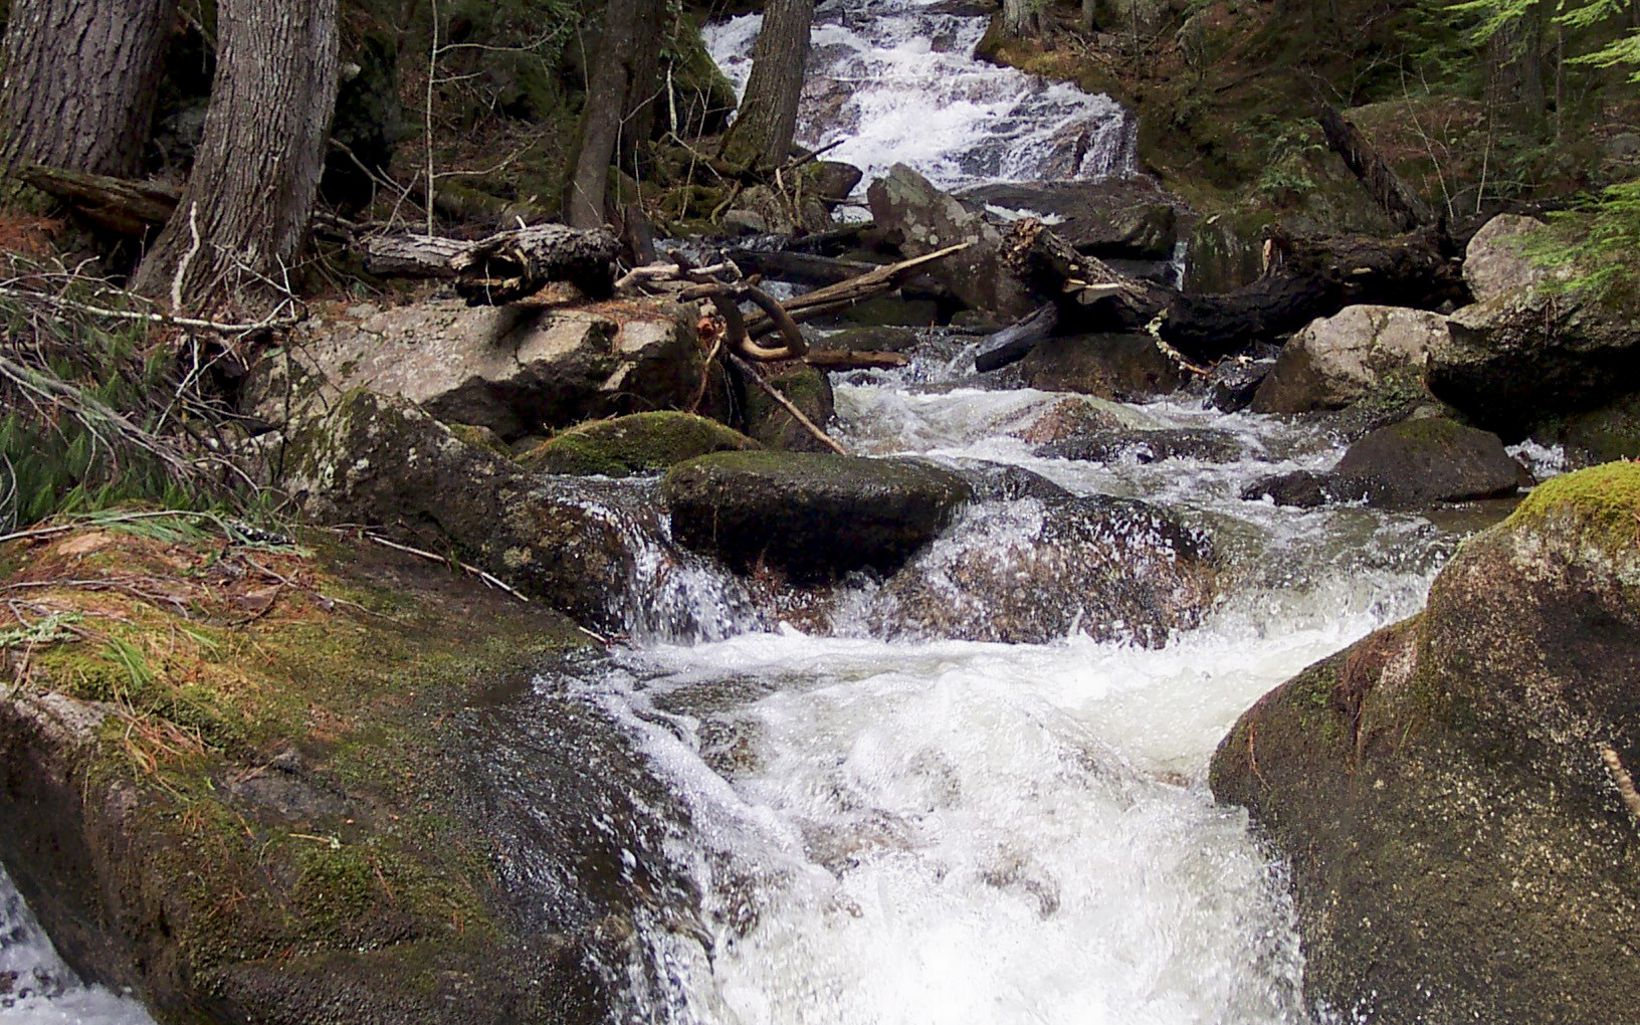 View of forest stream in the Debsconeag Lakes Wilderness Area, an ecological reserve and vital link in nearly 500,000 acres of contiguous conservation land in Maine.